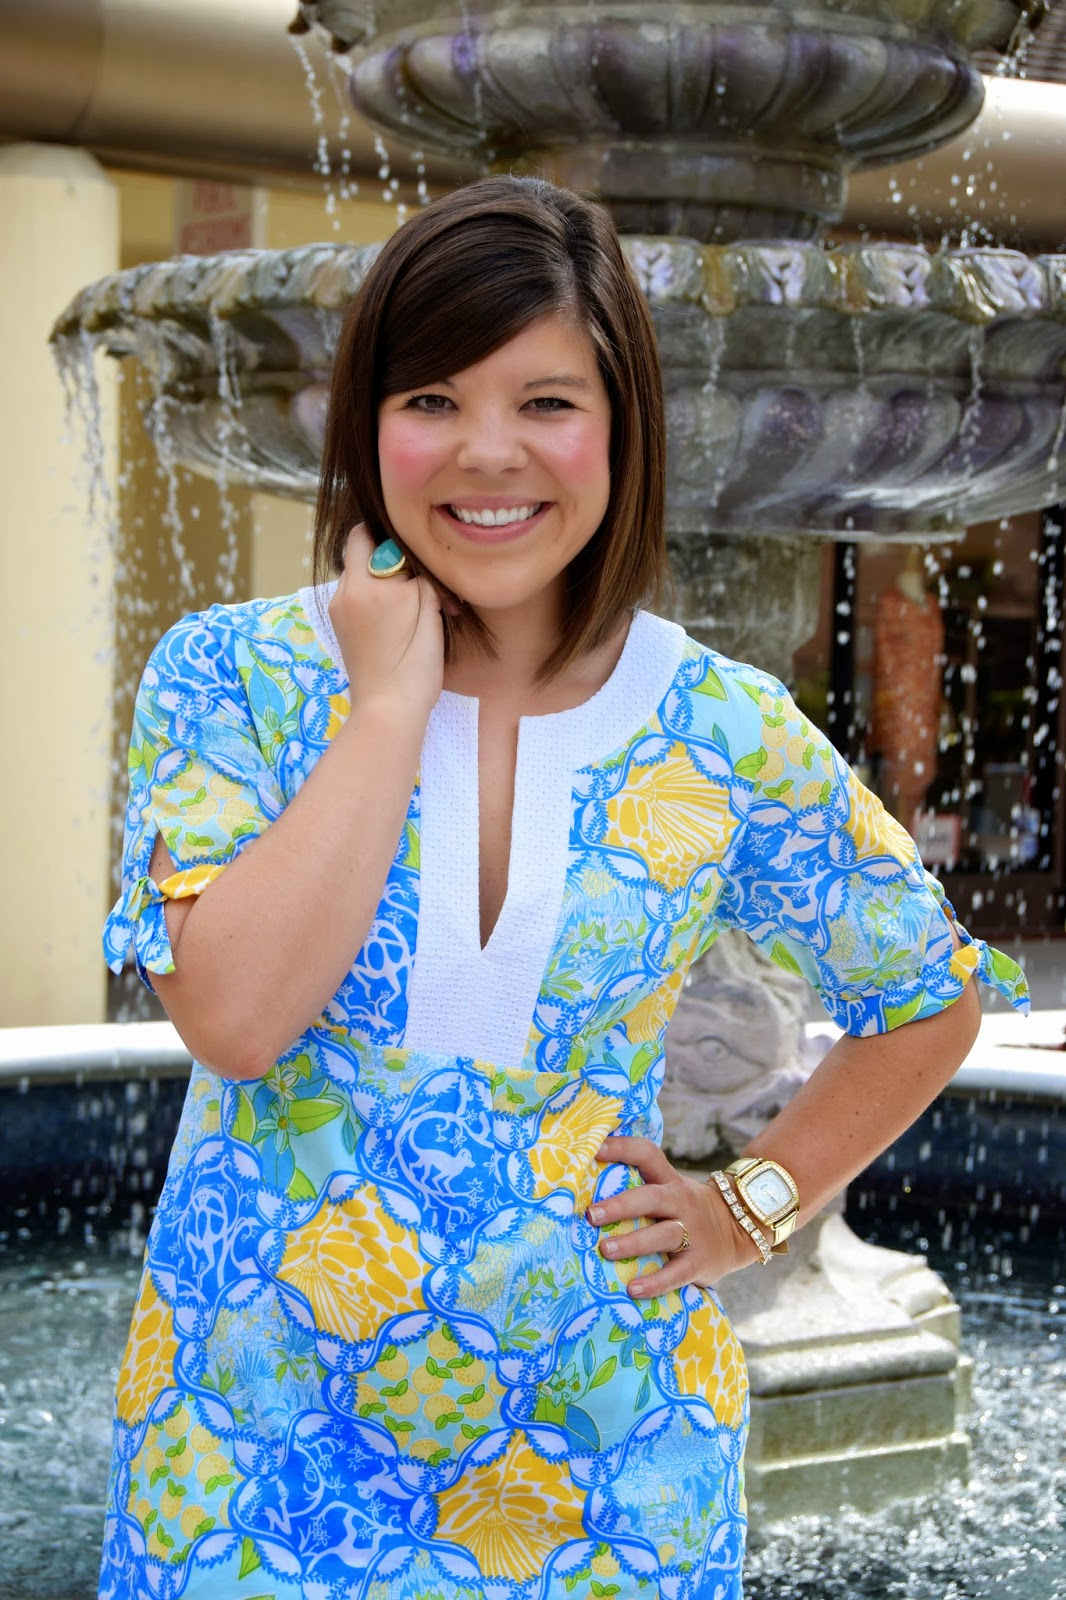 6 Ways to Score Lilly for Less